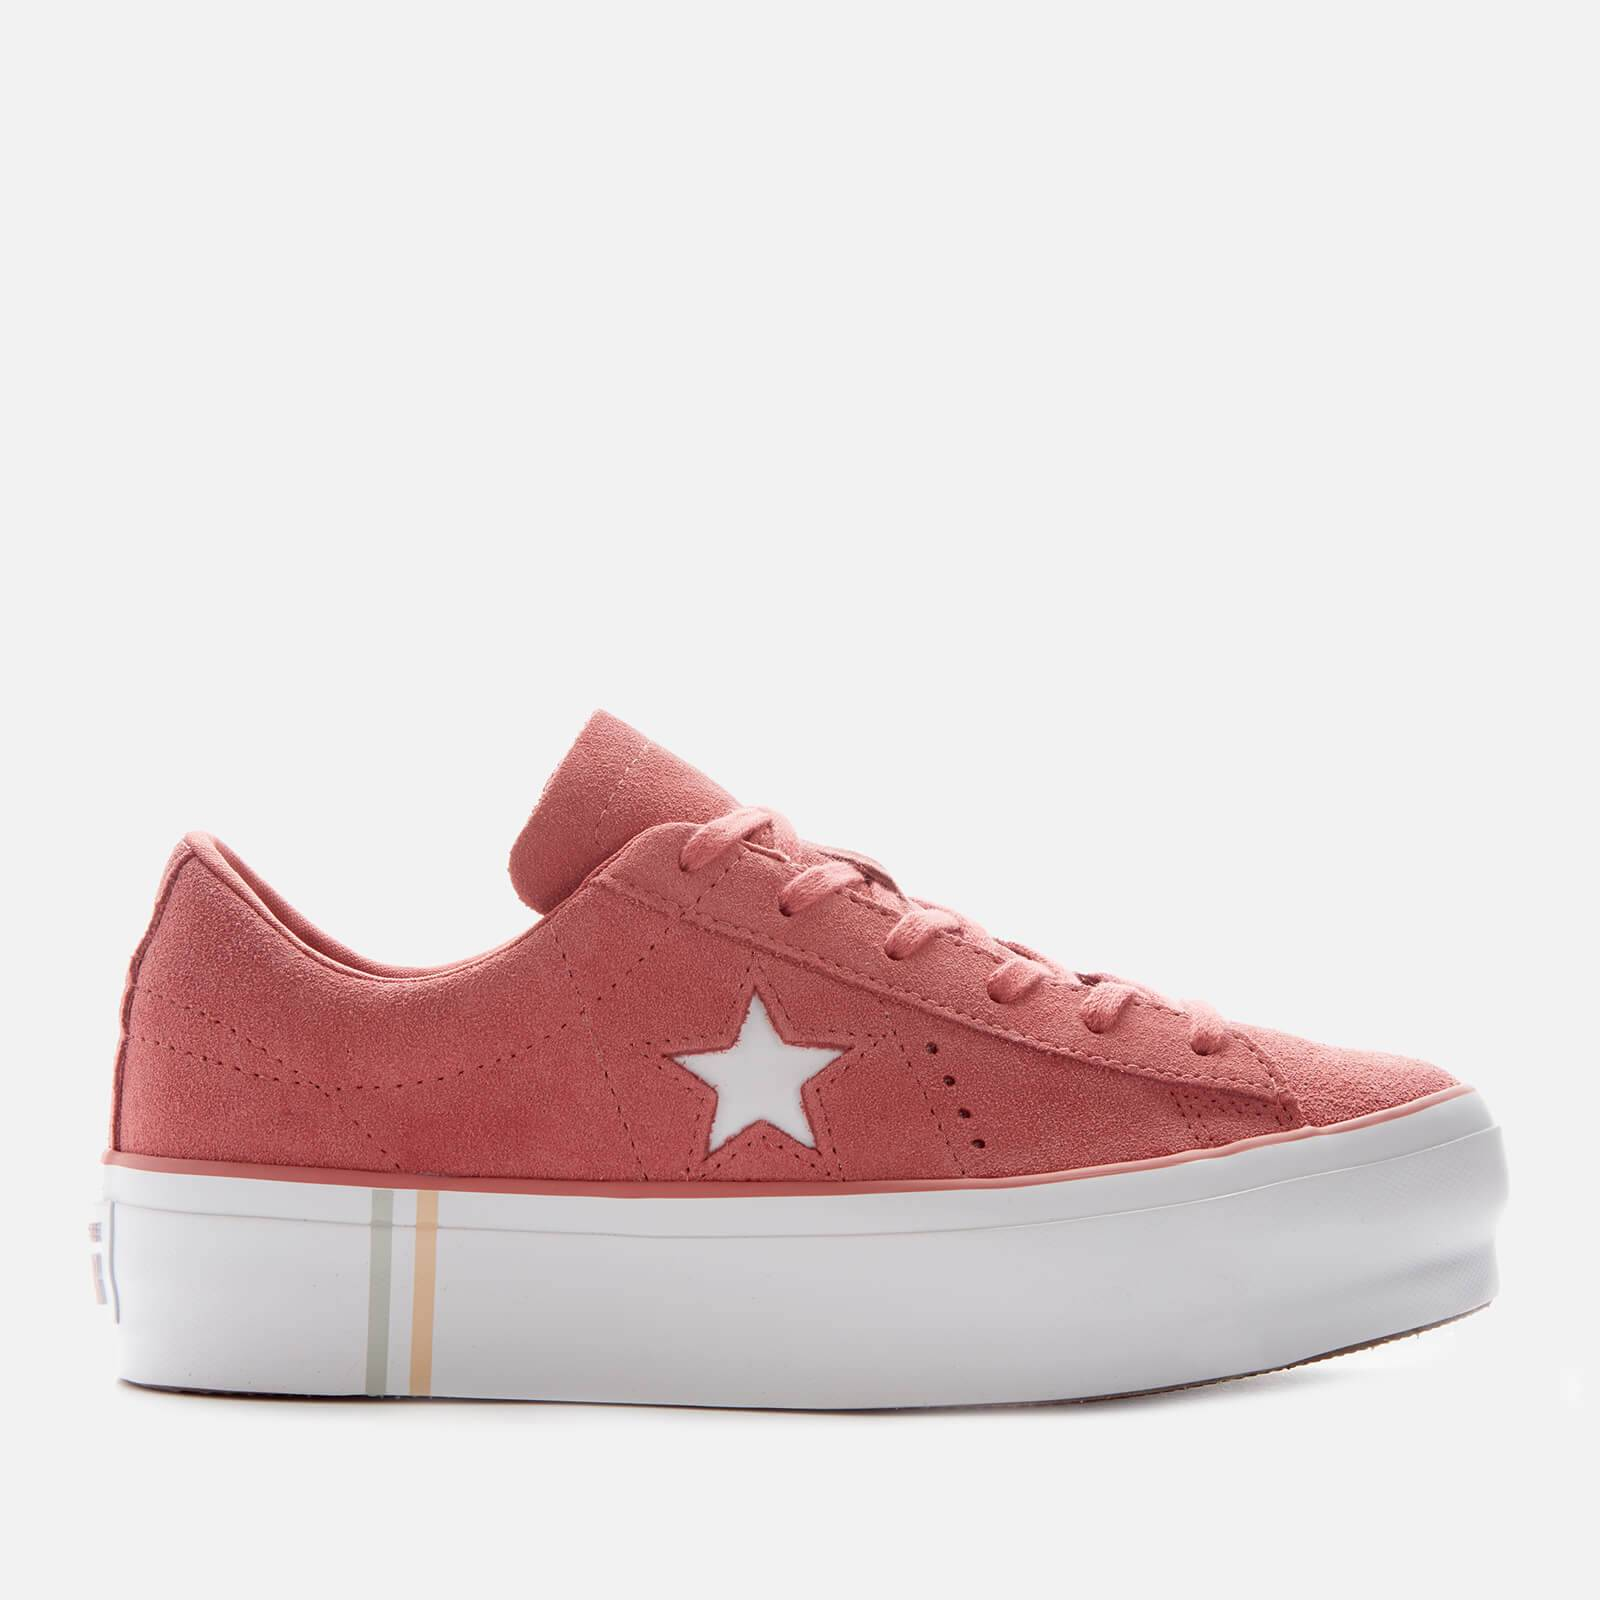 Converse Women's One Star Platform Seasonal Suede Ox Trainers - Light Redwood/White/White - UK 5 - Red